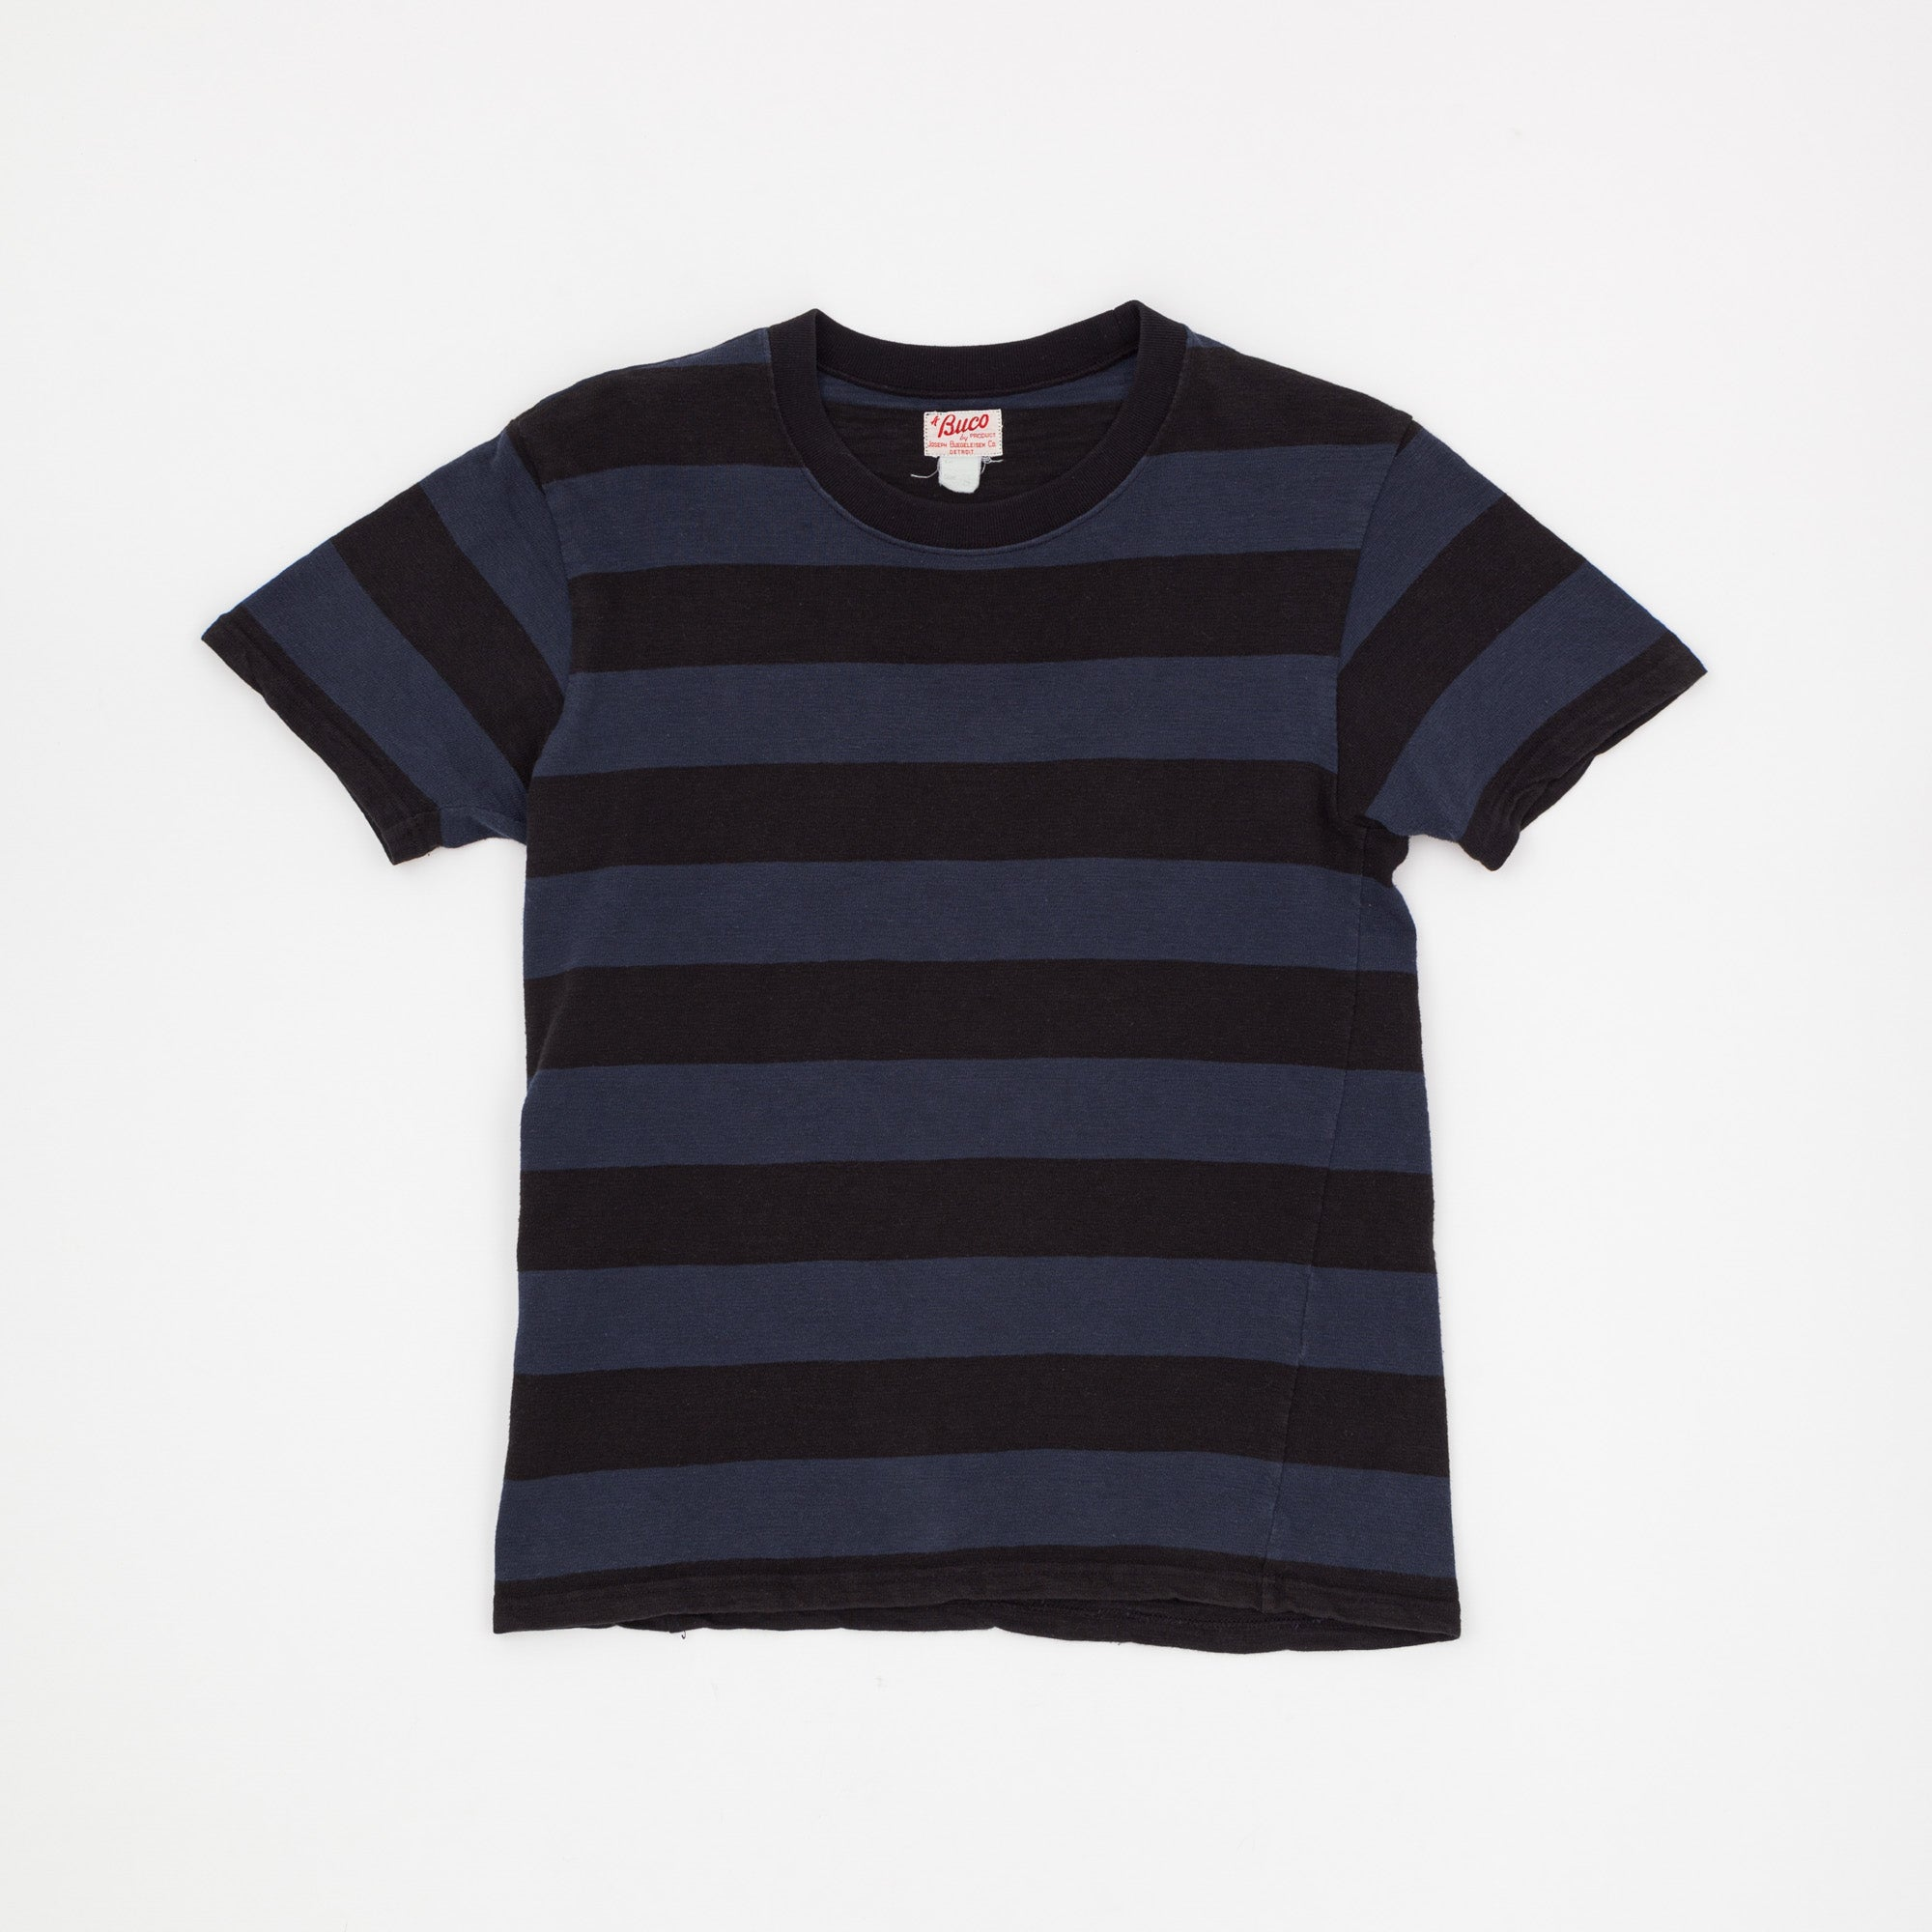 The Real McCoy's Buco 1950s Stripe T-Shirt